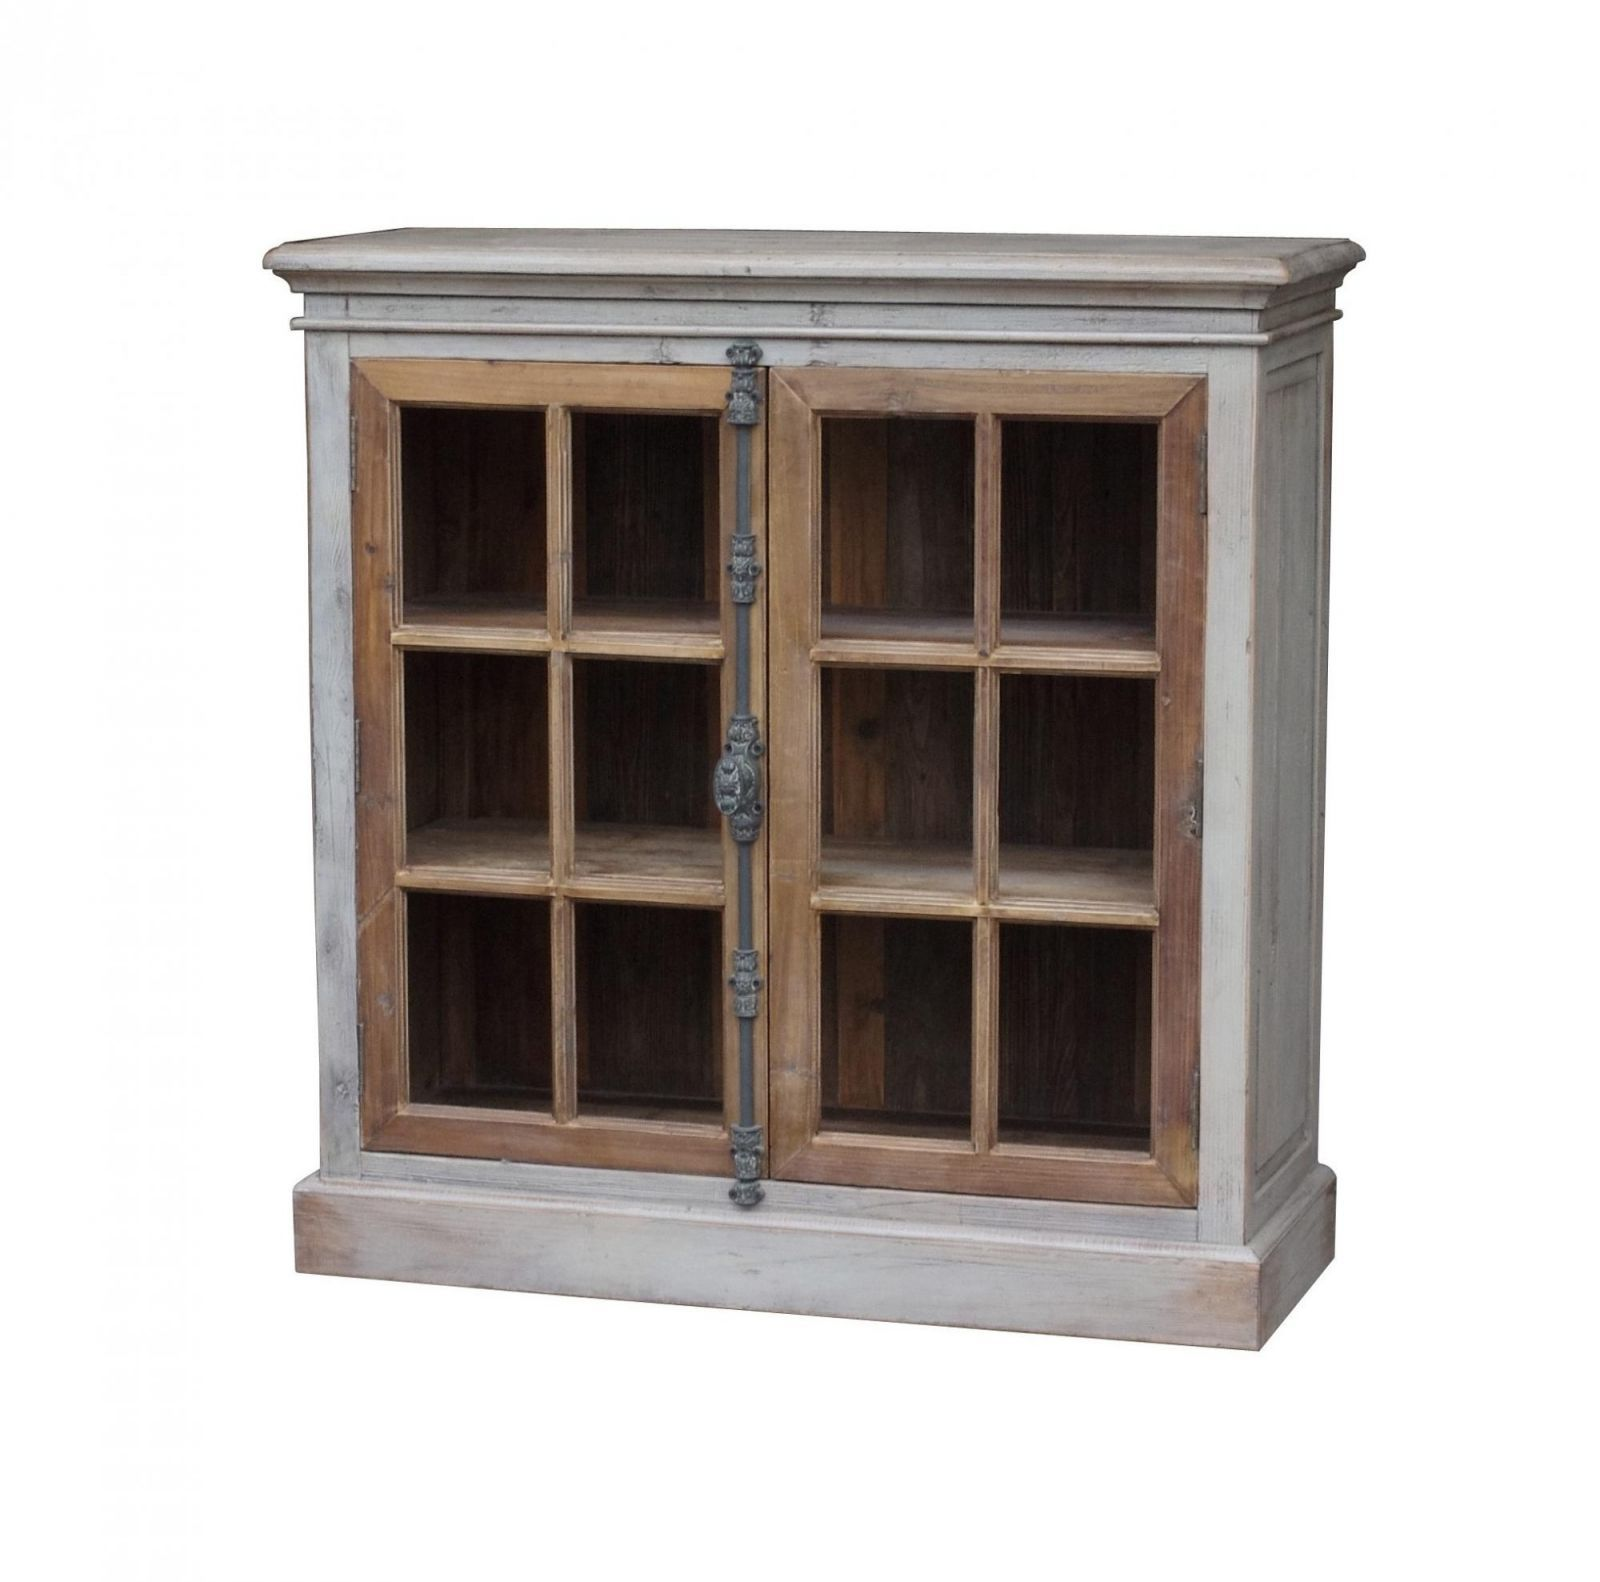 Restoration hardware style french casement glass door display console cabinet cabinets cupboards - Restoration hardware cabinets ...